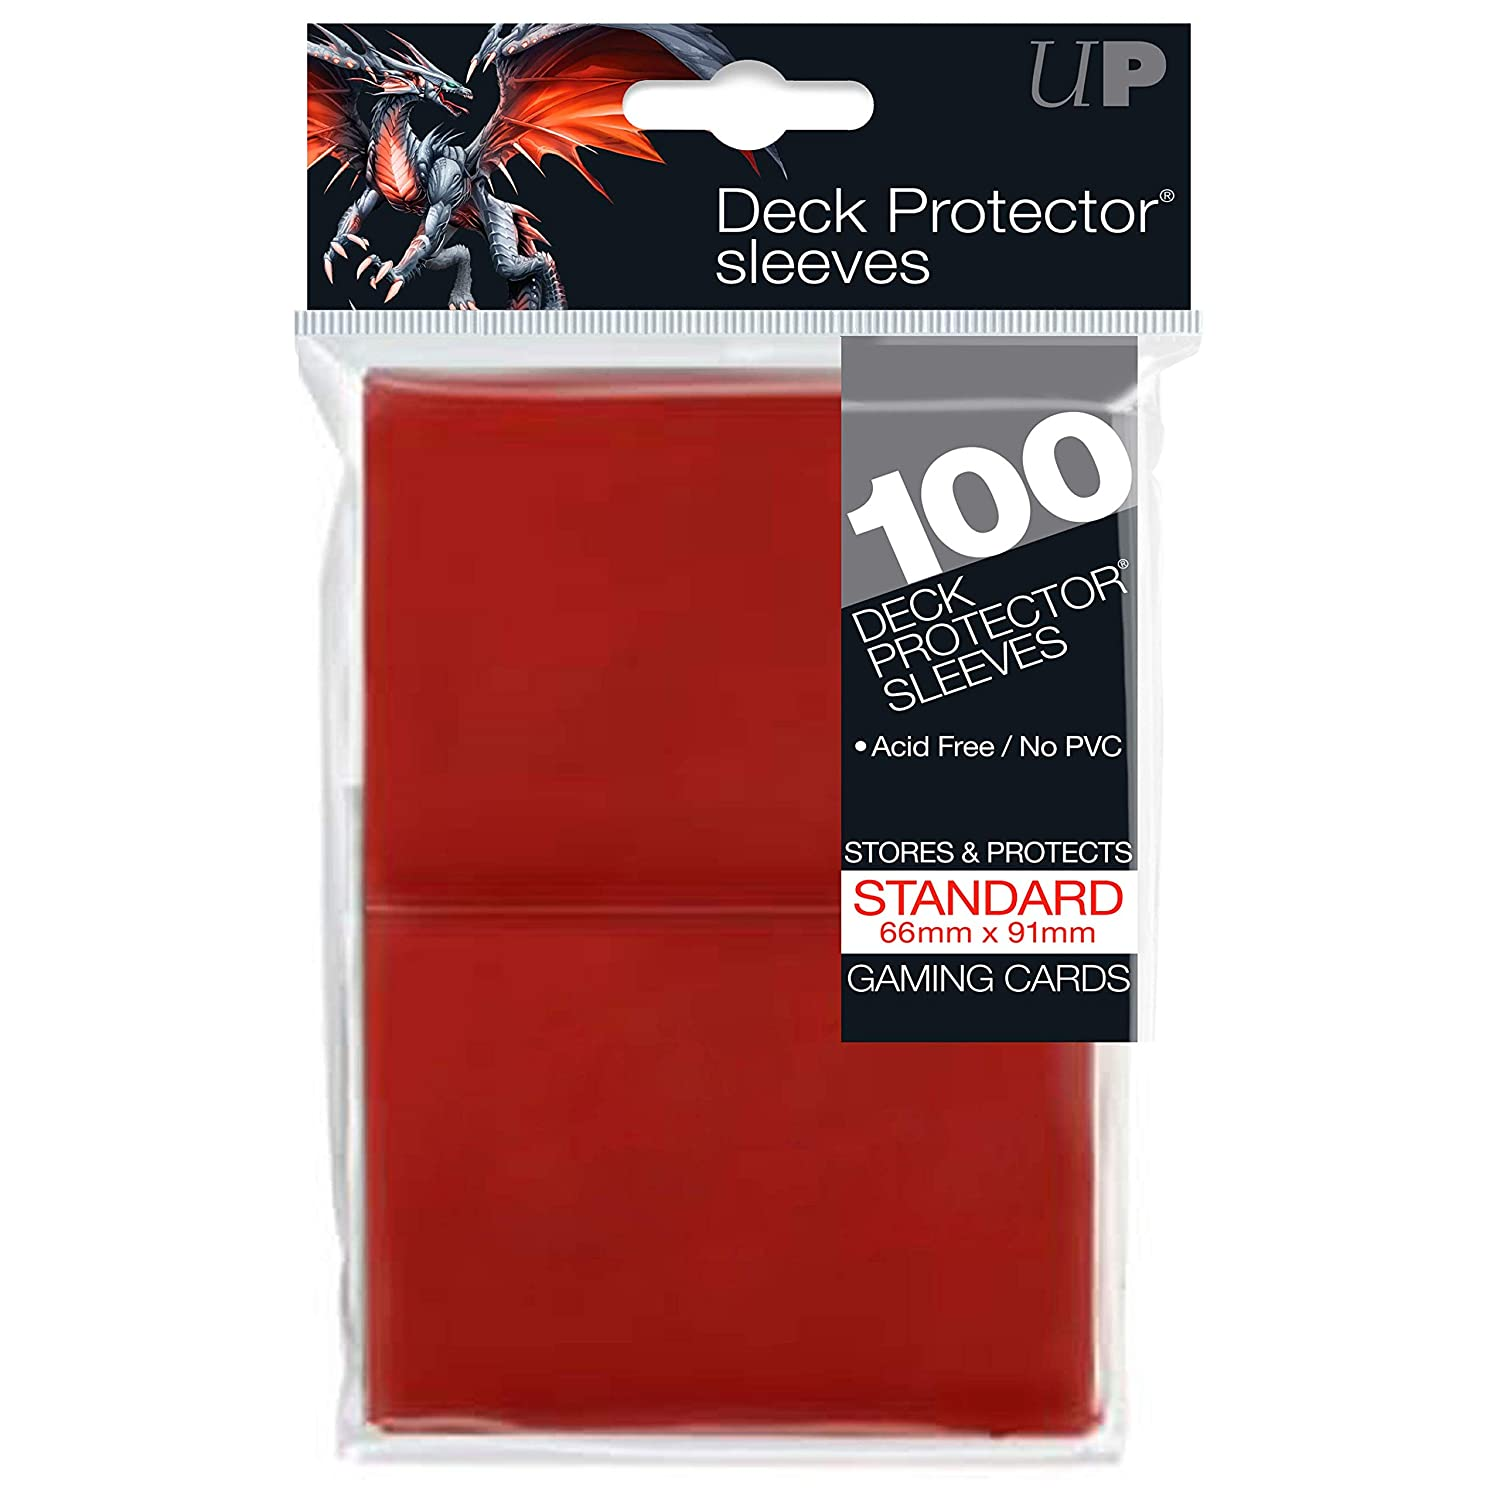 Ultra Pro Deck Protector Sleeves Standard Sized Light Blue 100 Count